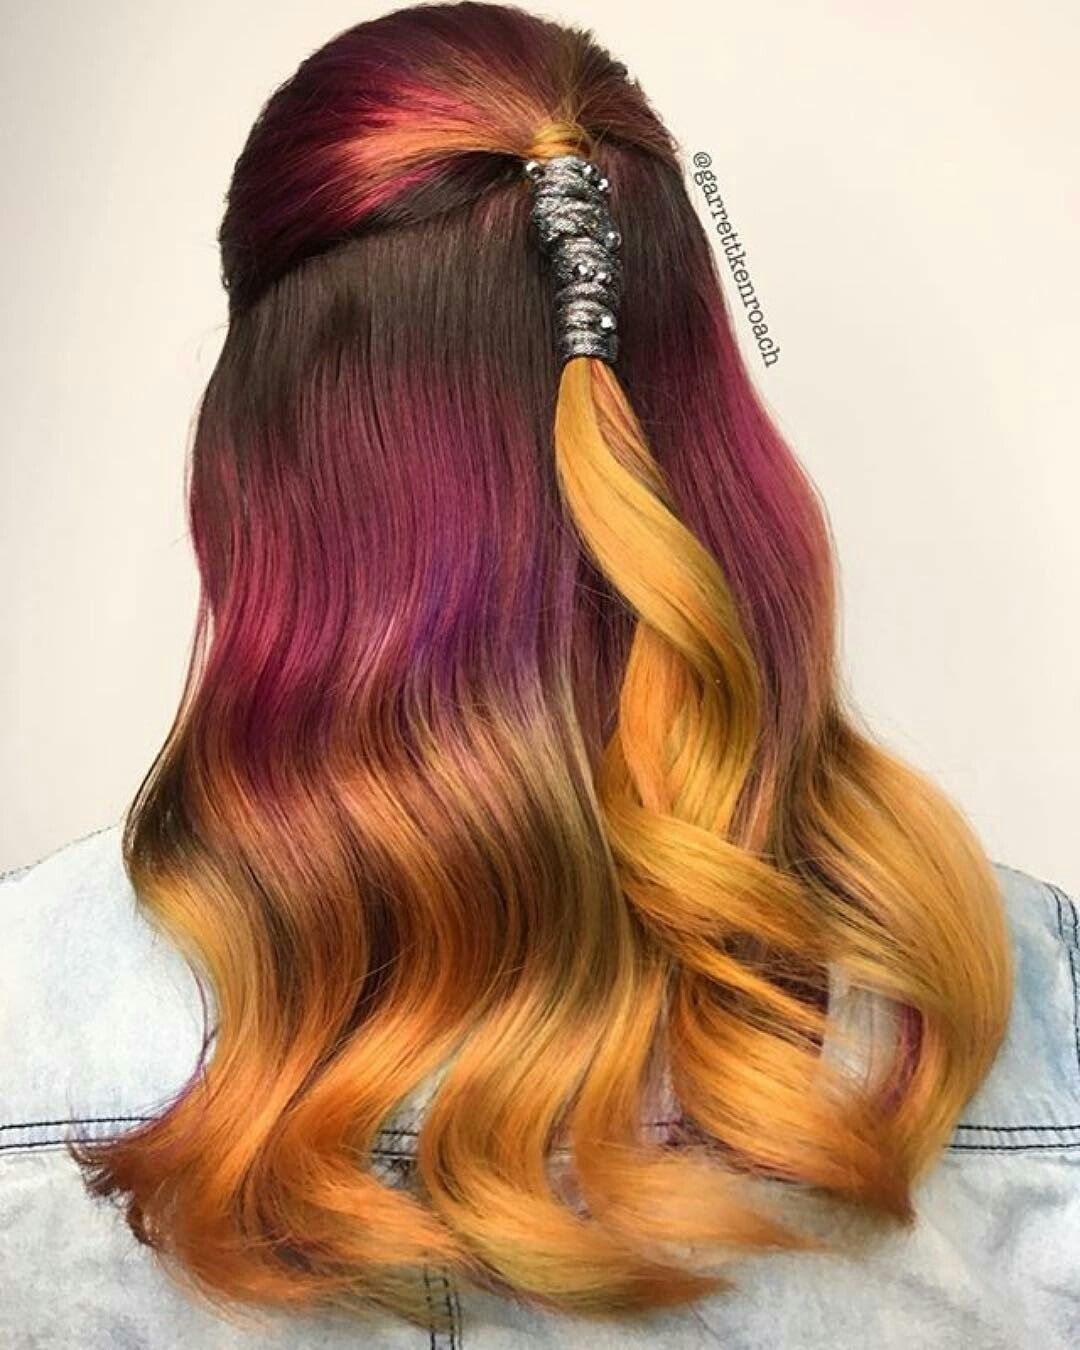 Pin By Kaylee Job On Hair Pinterest Hair Hair Styles And Dyed Hair